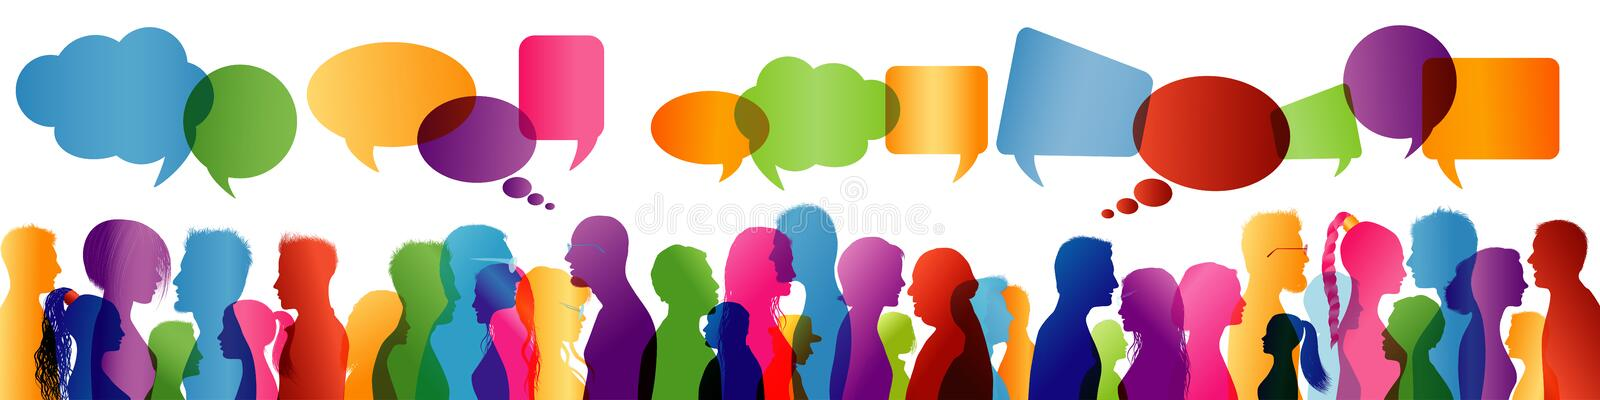 Crowd talking. Group of people talking. Communication between people. Colored profile silhouette. Speech bubble. Illustration with crowd chatting. Communication vector illustration